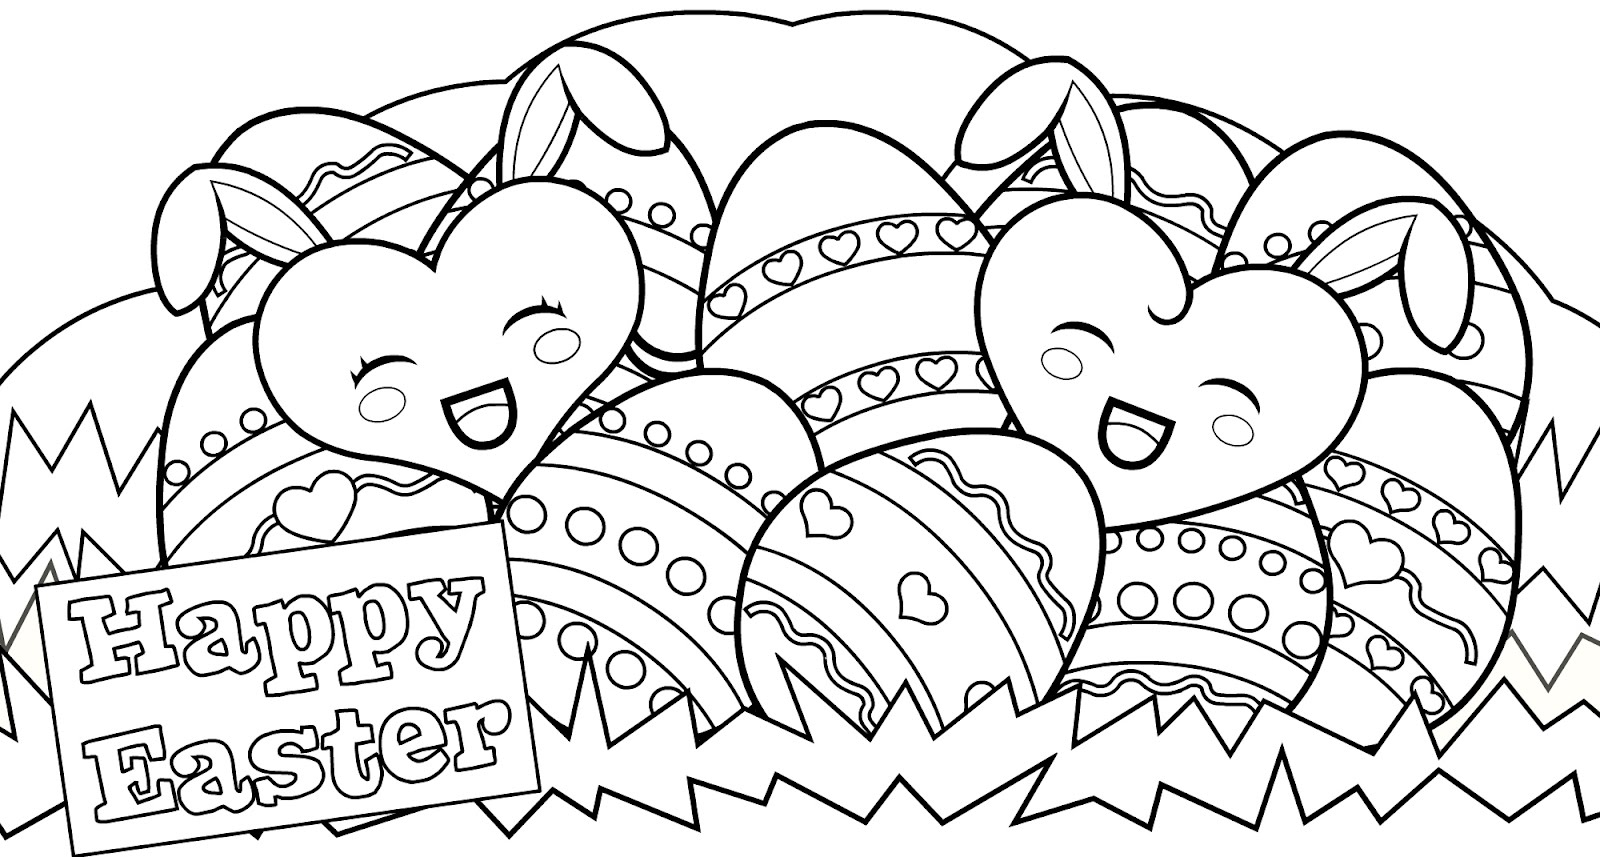 Easter Coloring In Sheets : Free easter coloring sheets holiday pages